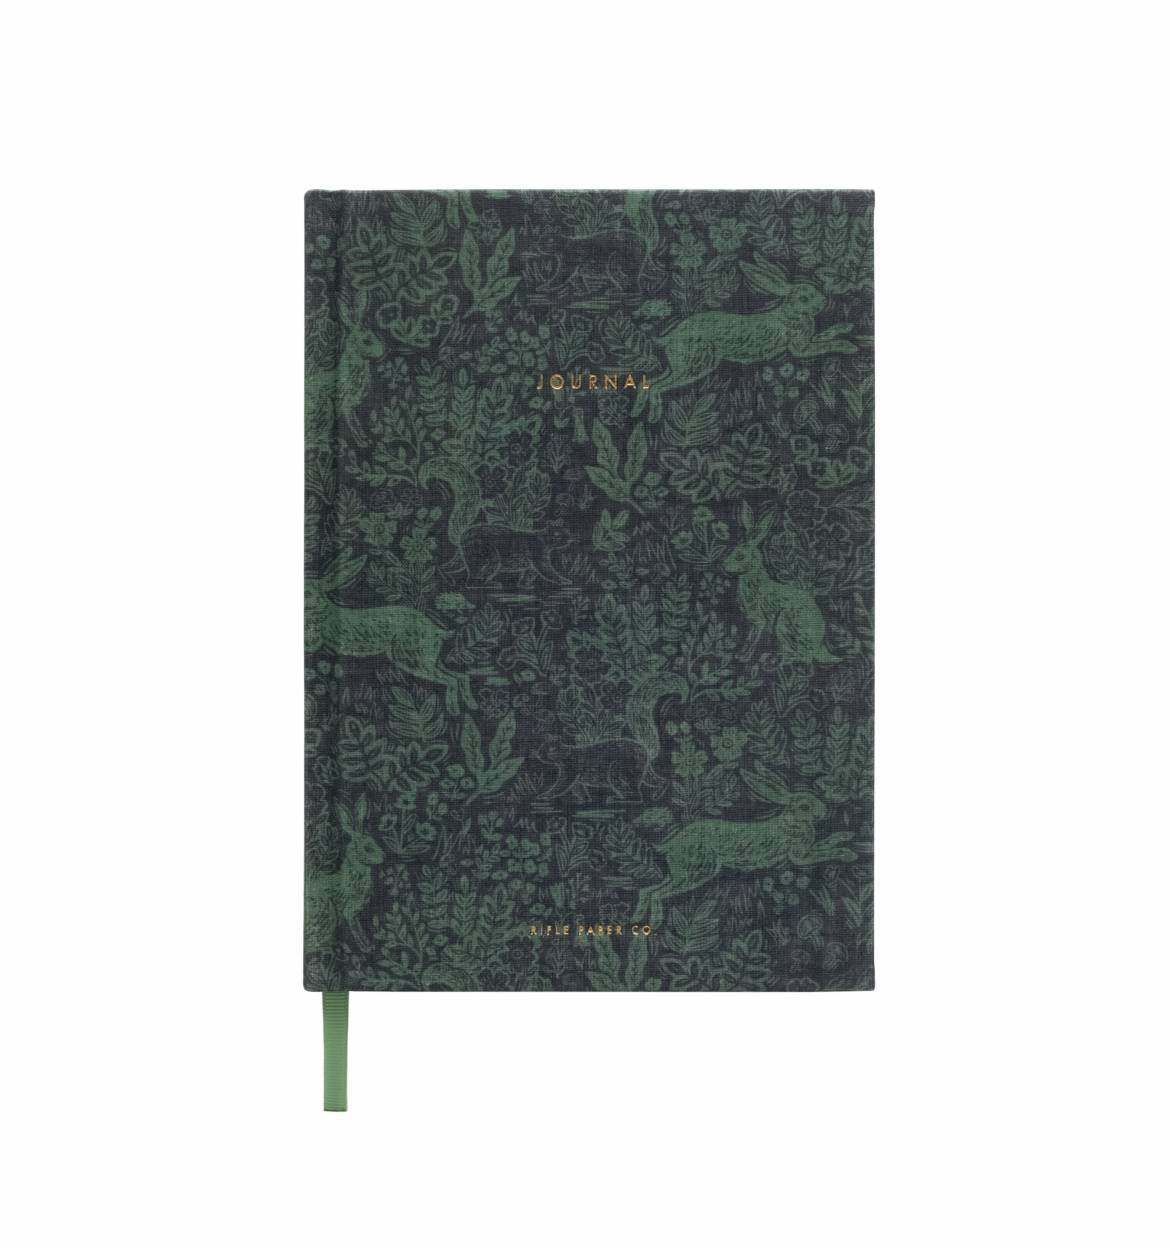 RIFLE - Fable fabric journal